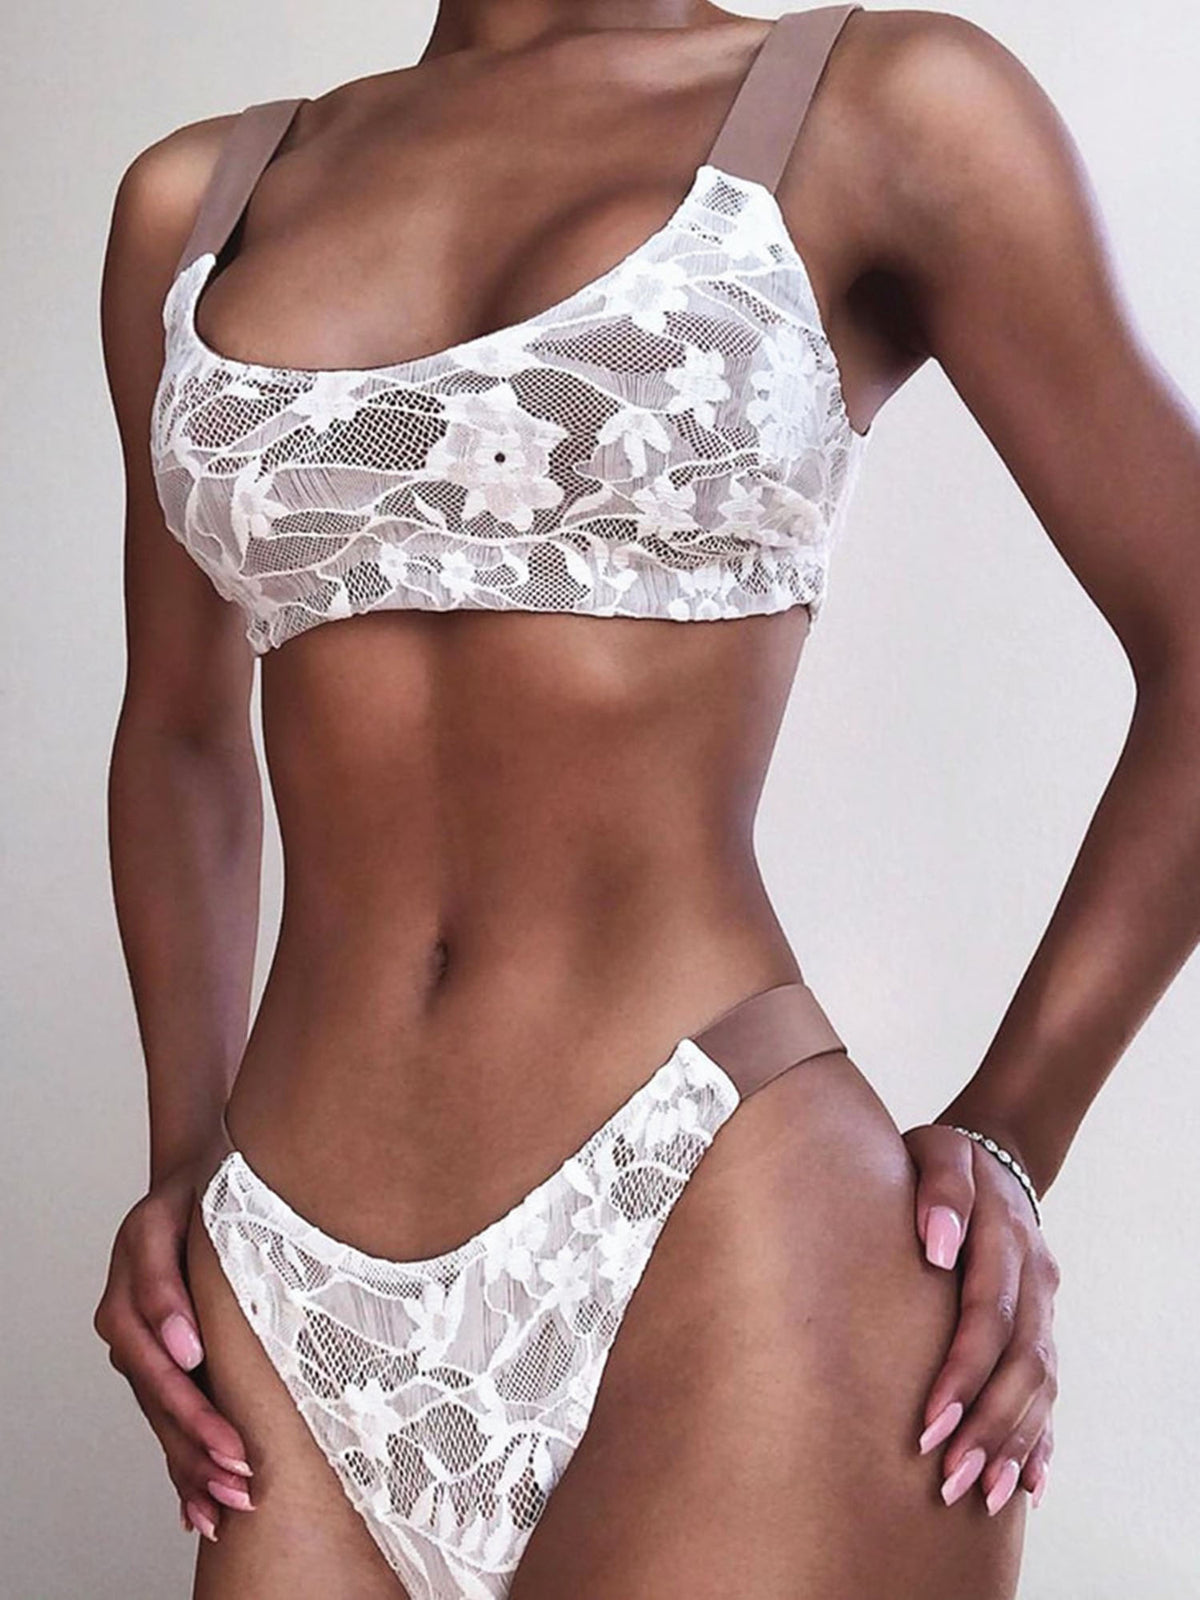 Lace Crop Top High Rise Bikini Swimsuit - worthtryit.com